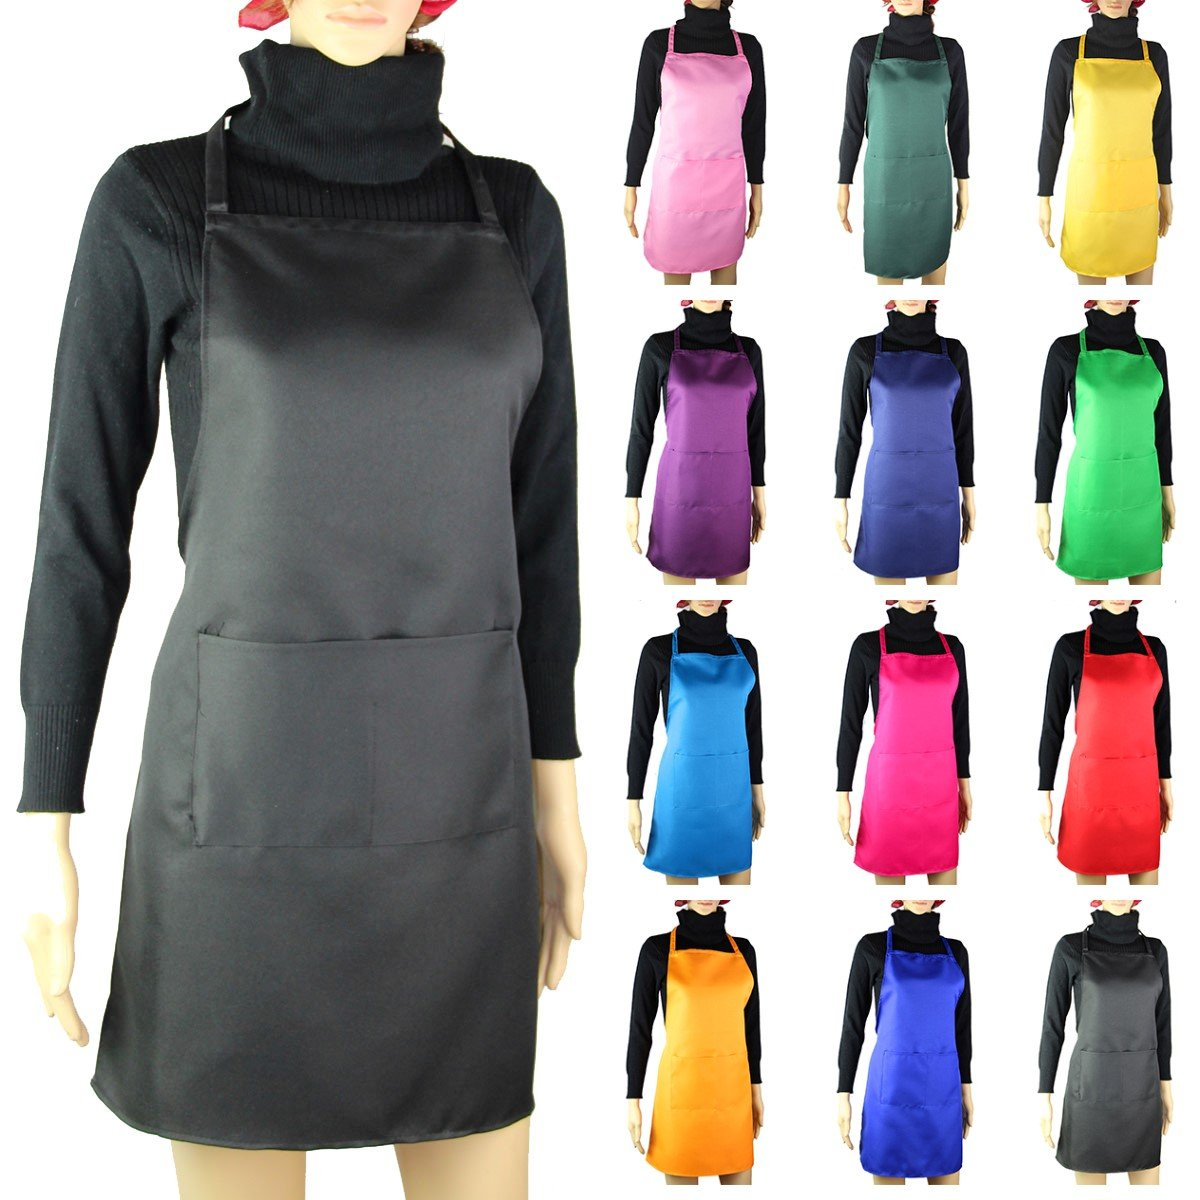 RayLineDo Plain Unisex Cook Cooking Catering Work Professional Chefs Waiters Apron Tabard with Twin Double Pocket